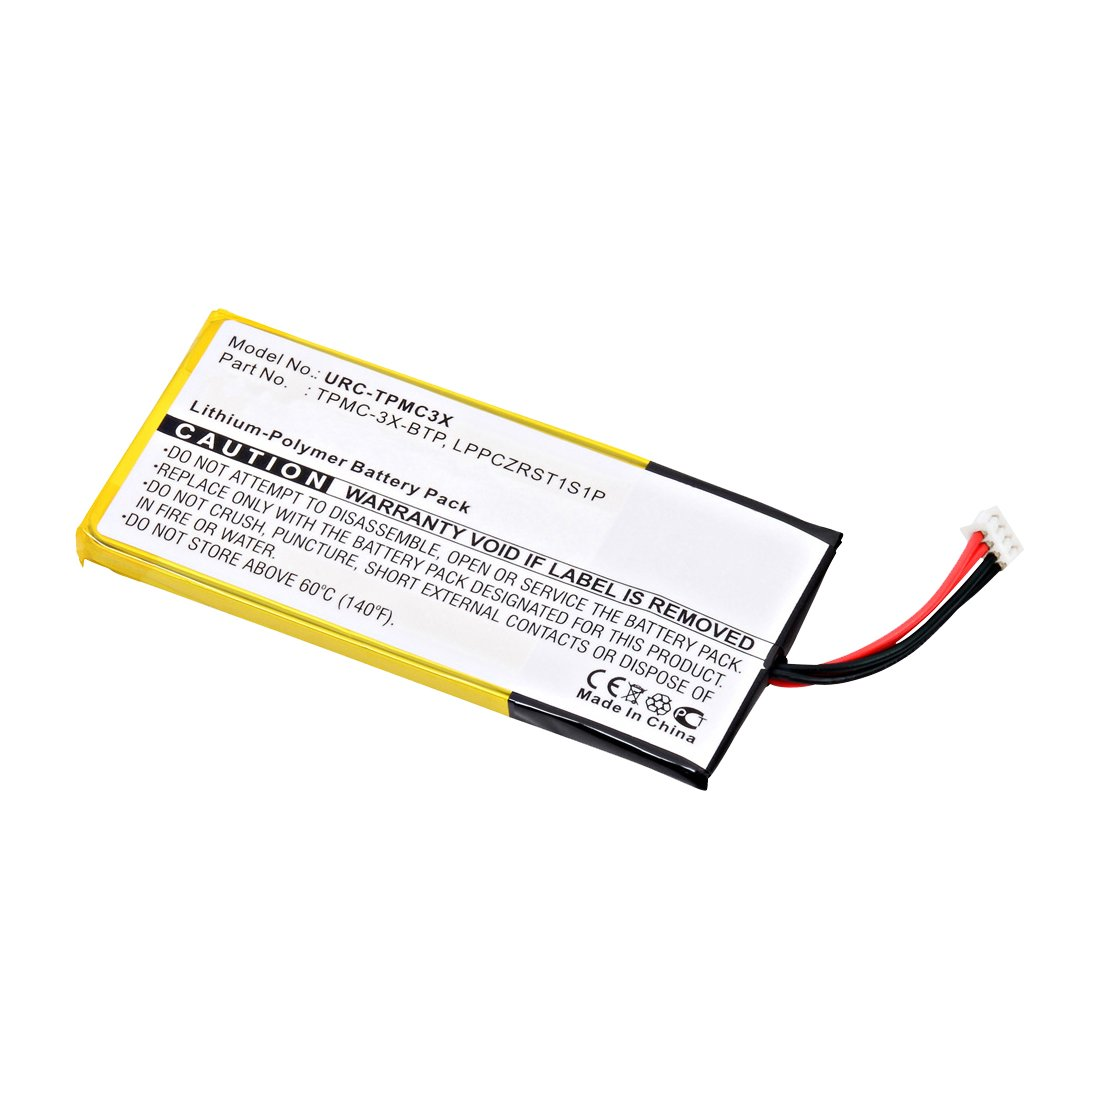 replacement crestron lppczrst1s1p remote control battery